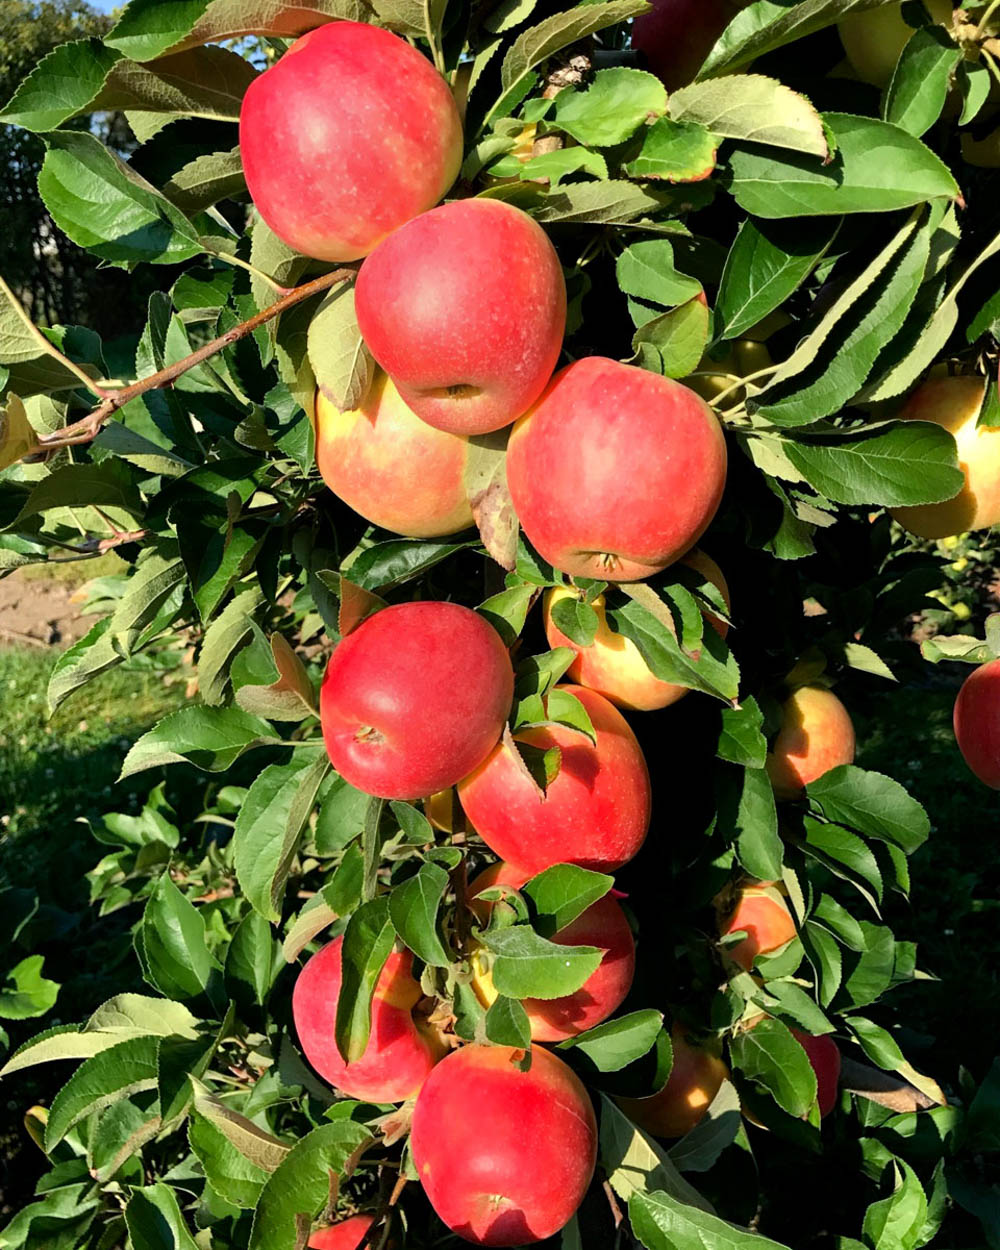 Pink Luster apples